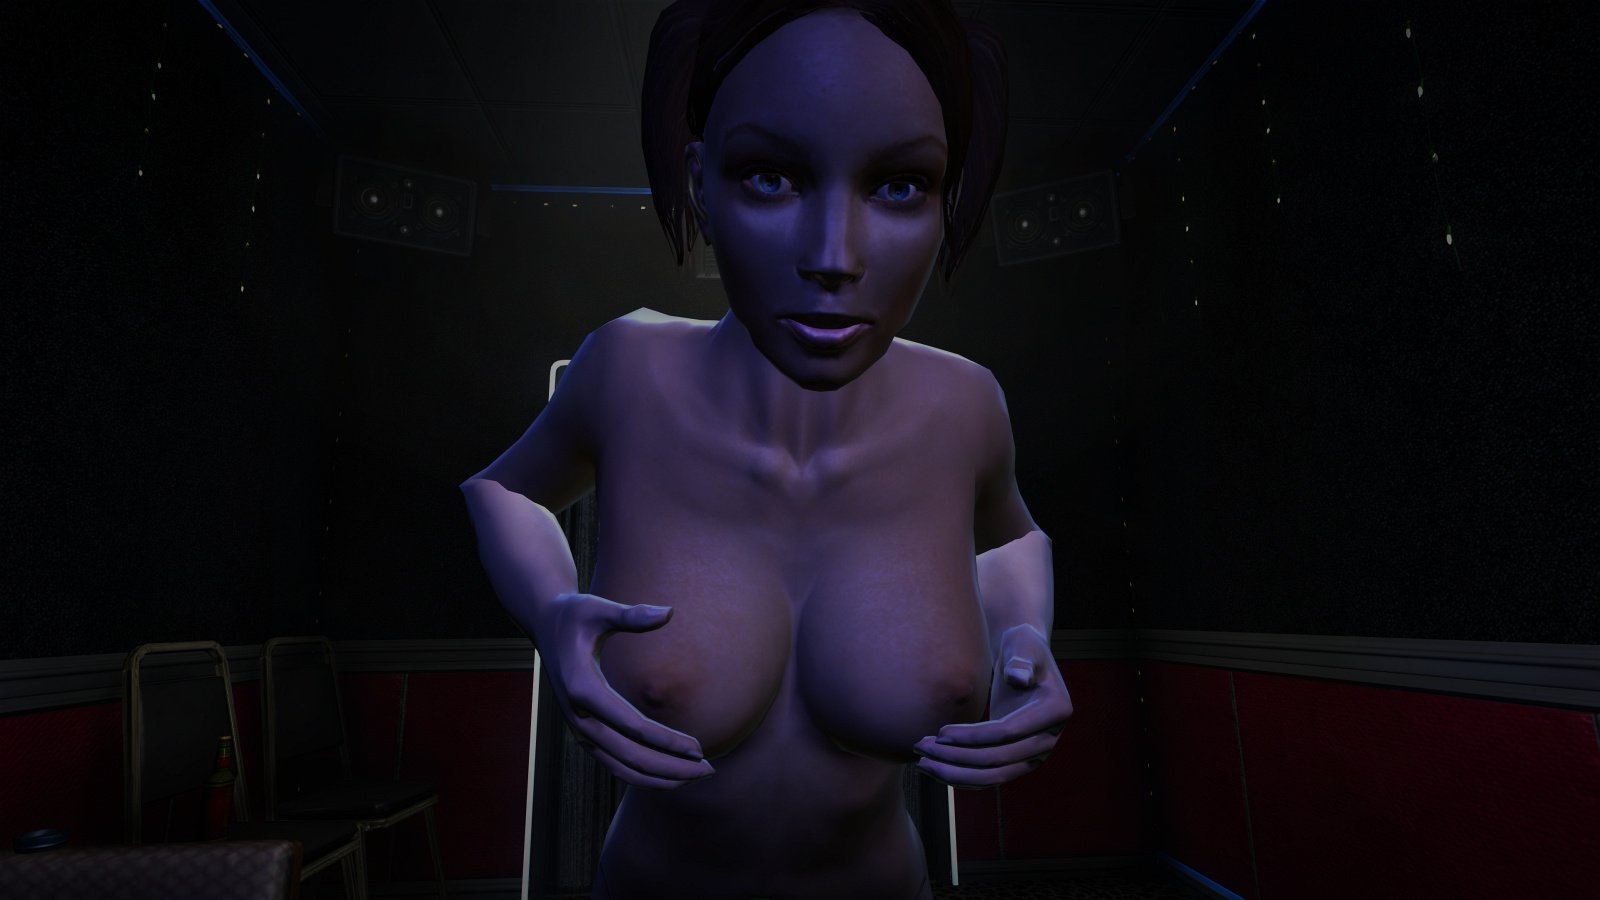 Sims porn video adult clips